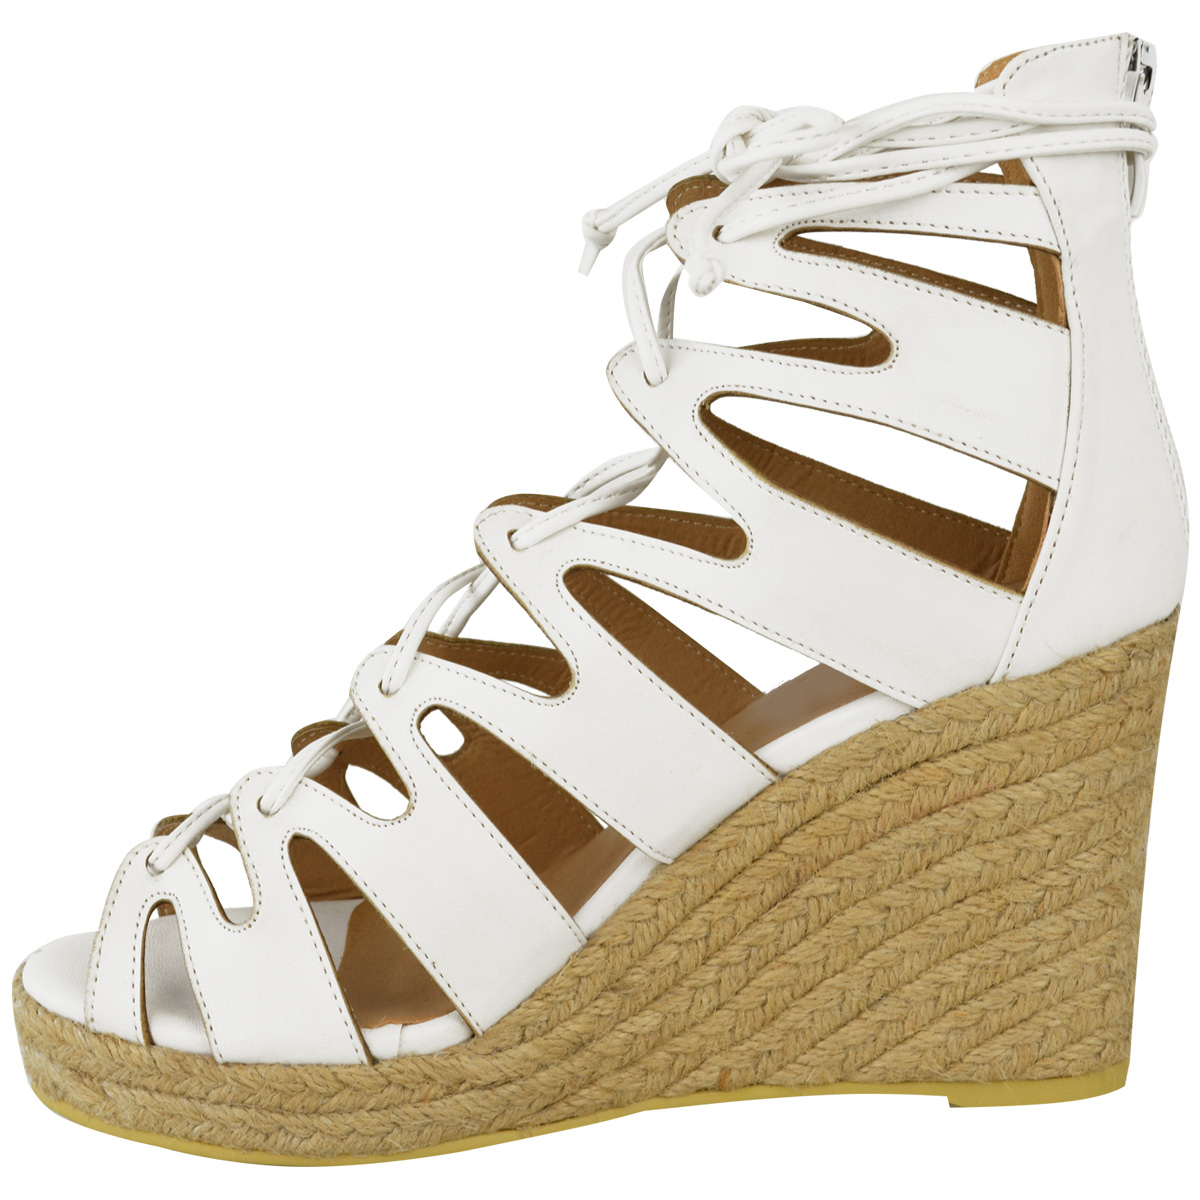 Creative  Kors Celena Wedge Womens Size 7 White Gladiator Sandals Shoes  No Box